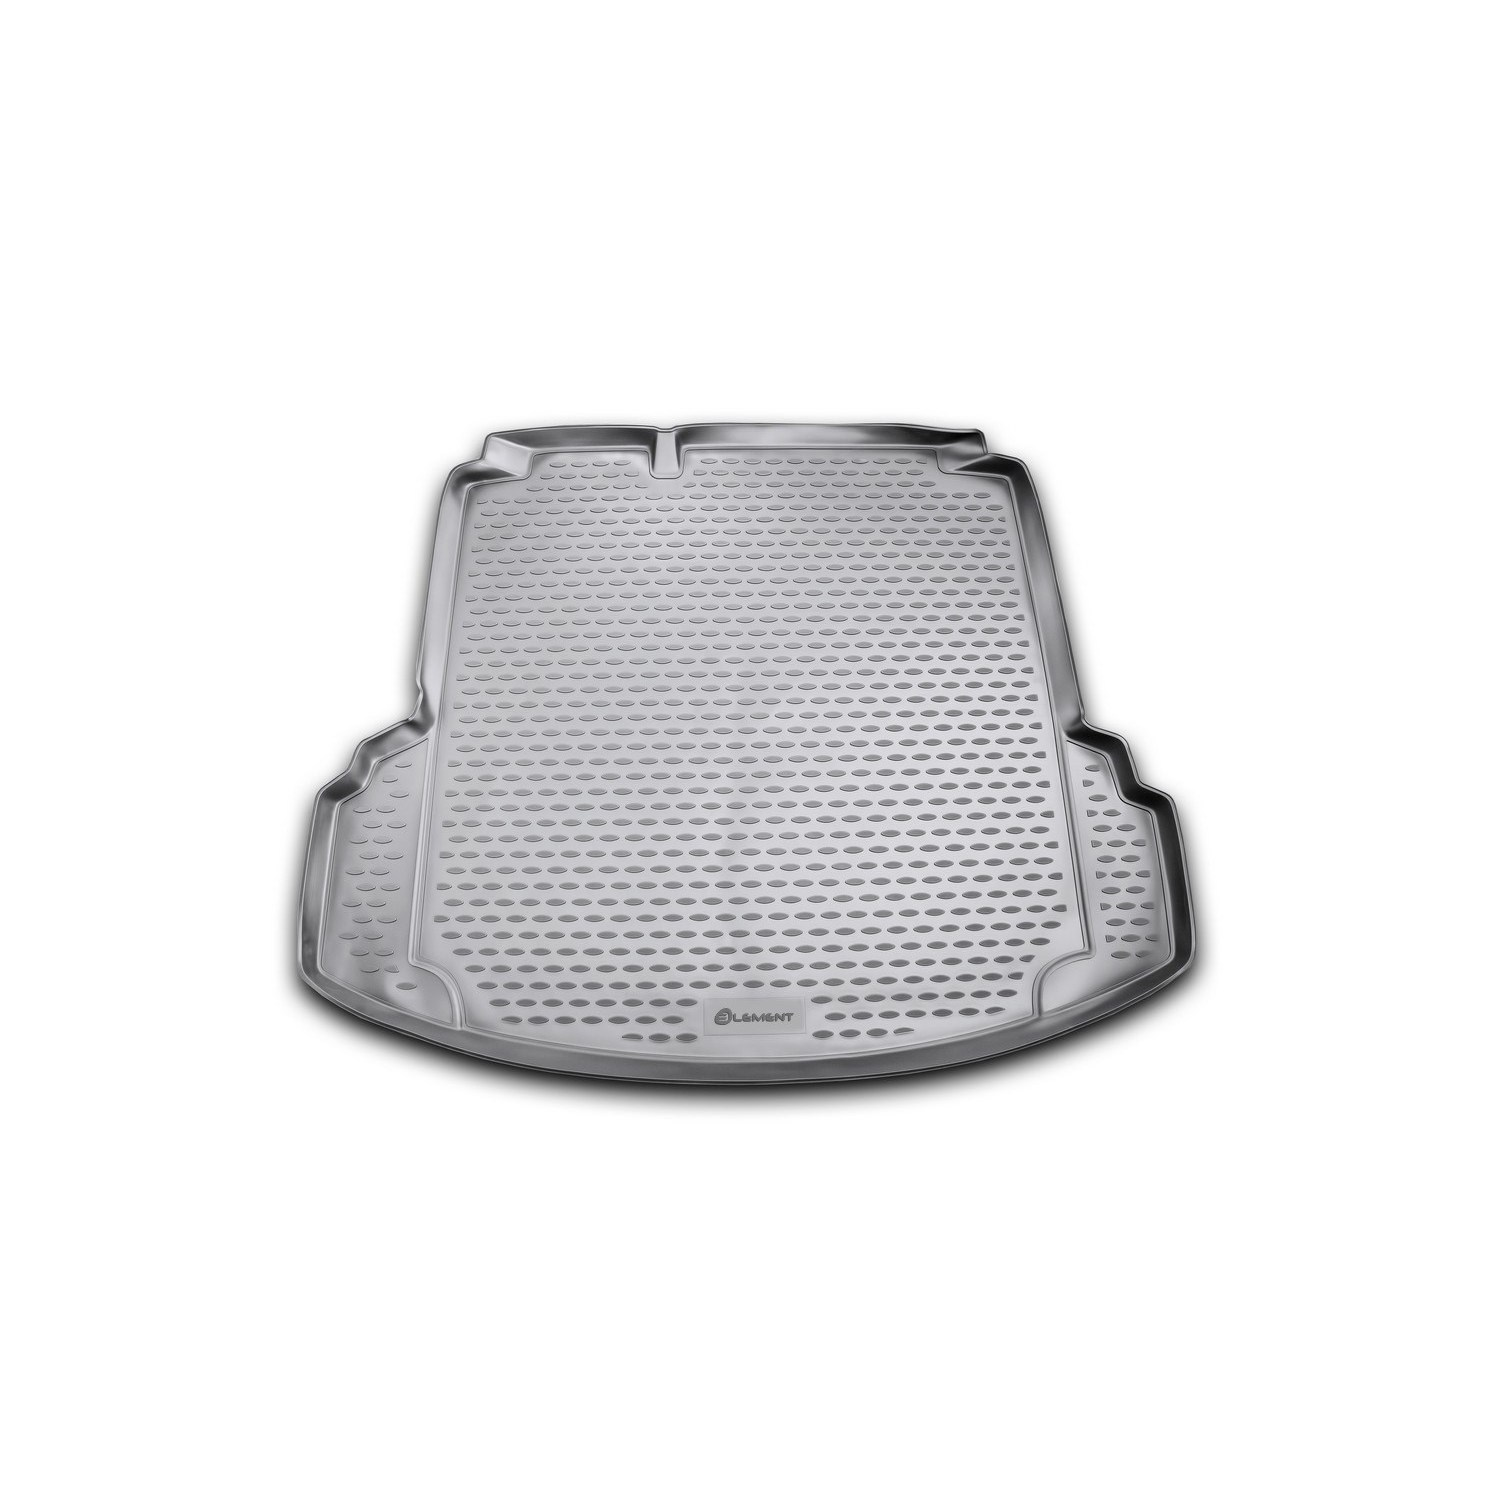 Trunk Mat For VW Jetta With Pockets 2011-2015, 2015, NLC.51.36.B10